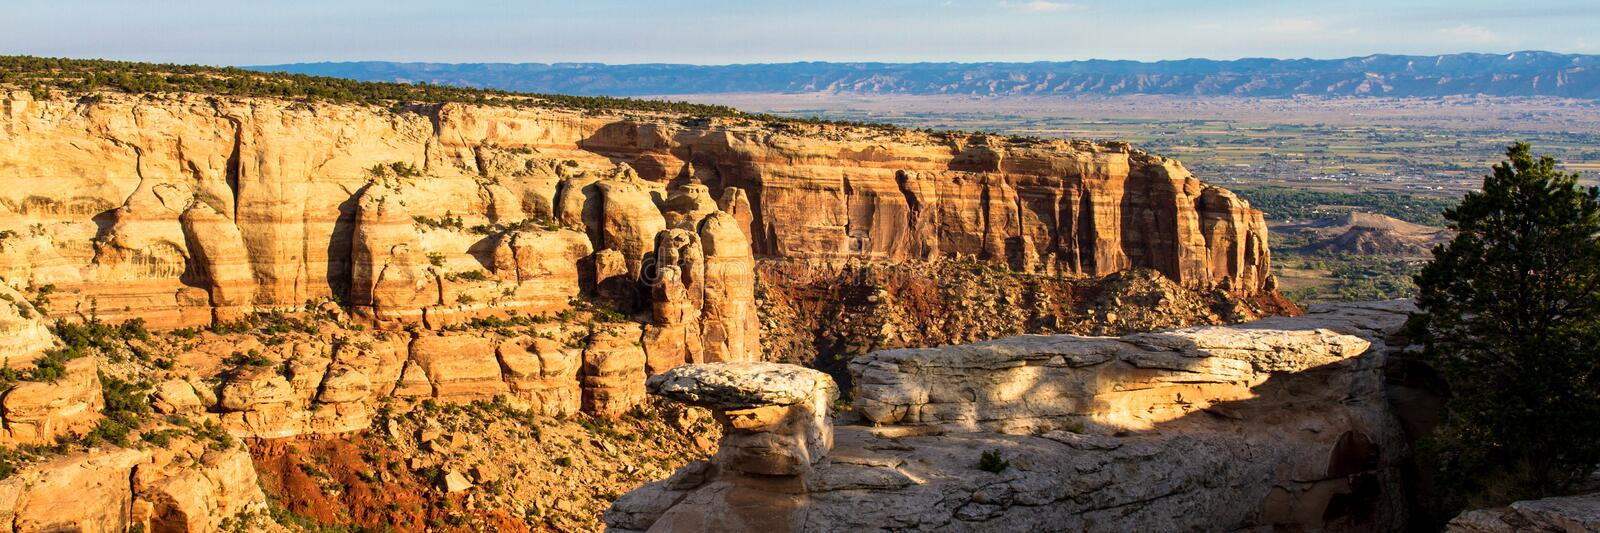 Panoramic view of Colorado National Monument consists of amazing natural formations near the towns of Grand Junction and Fruita royalty free stock photo